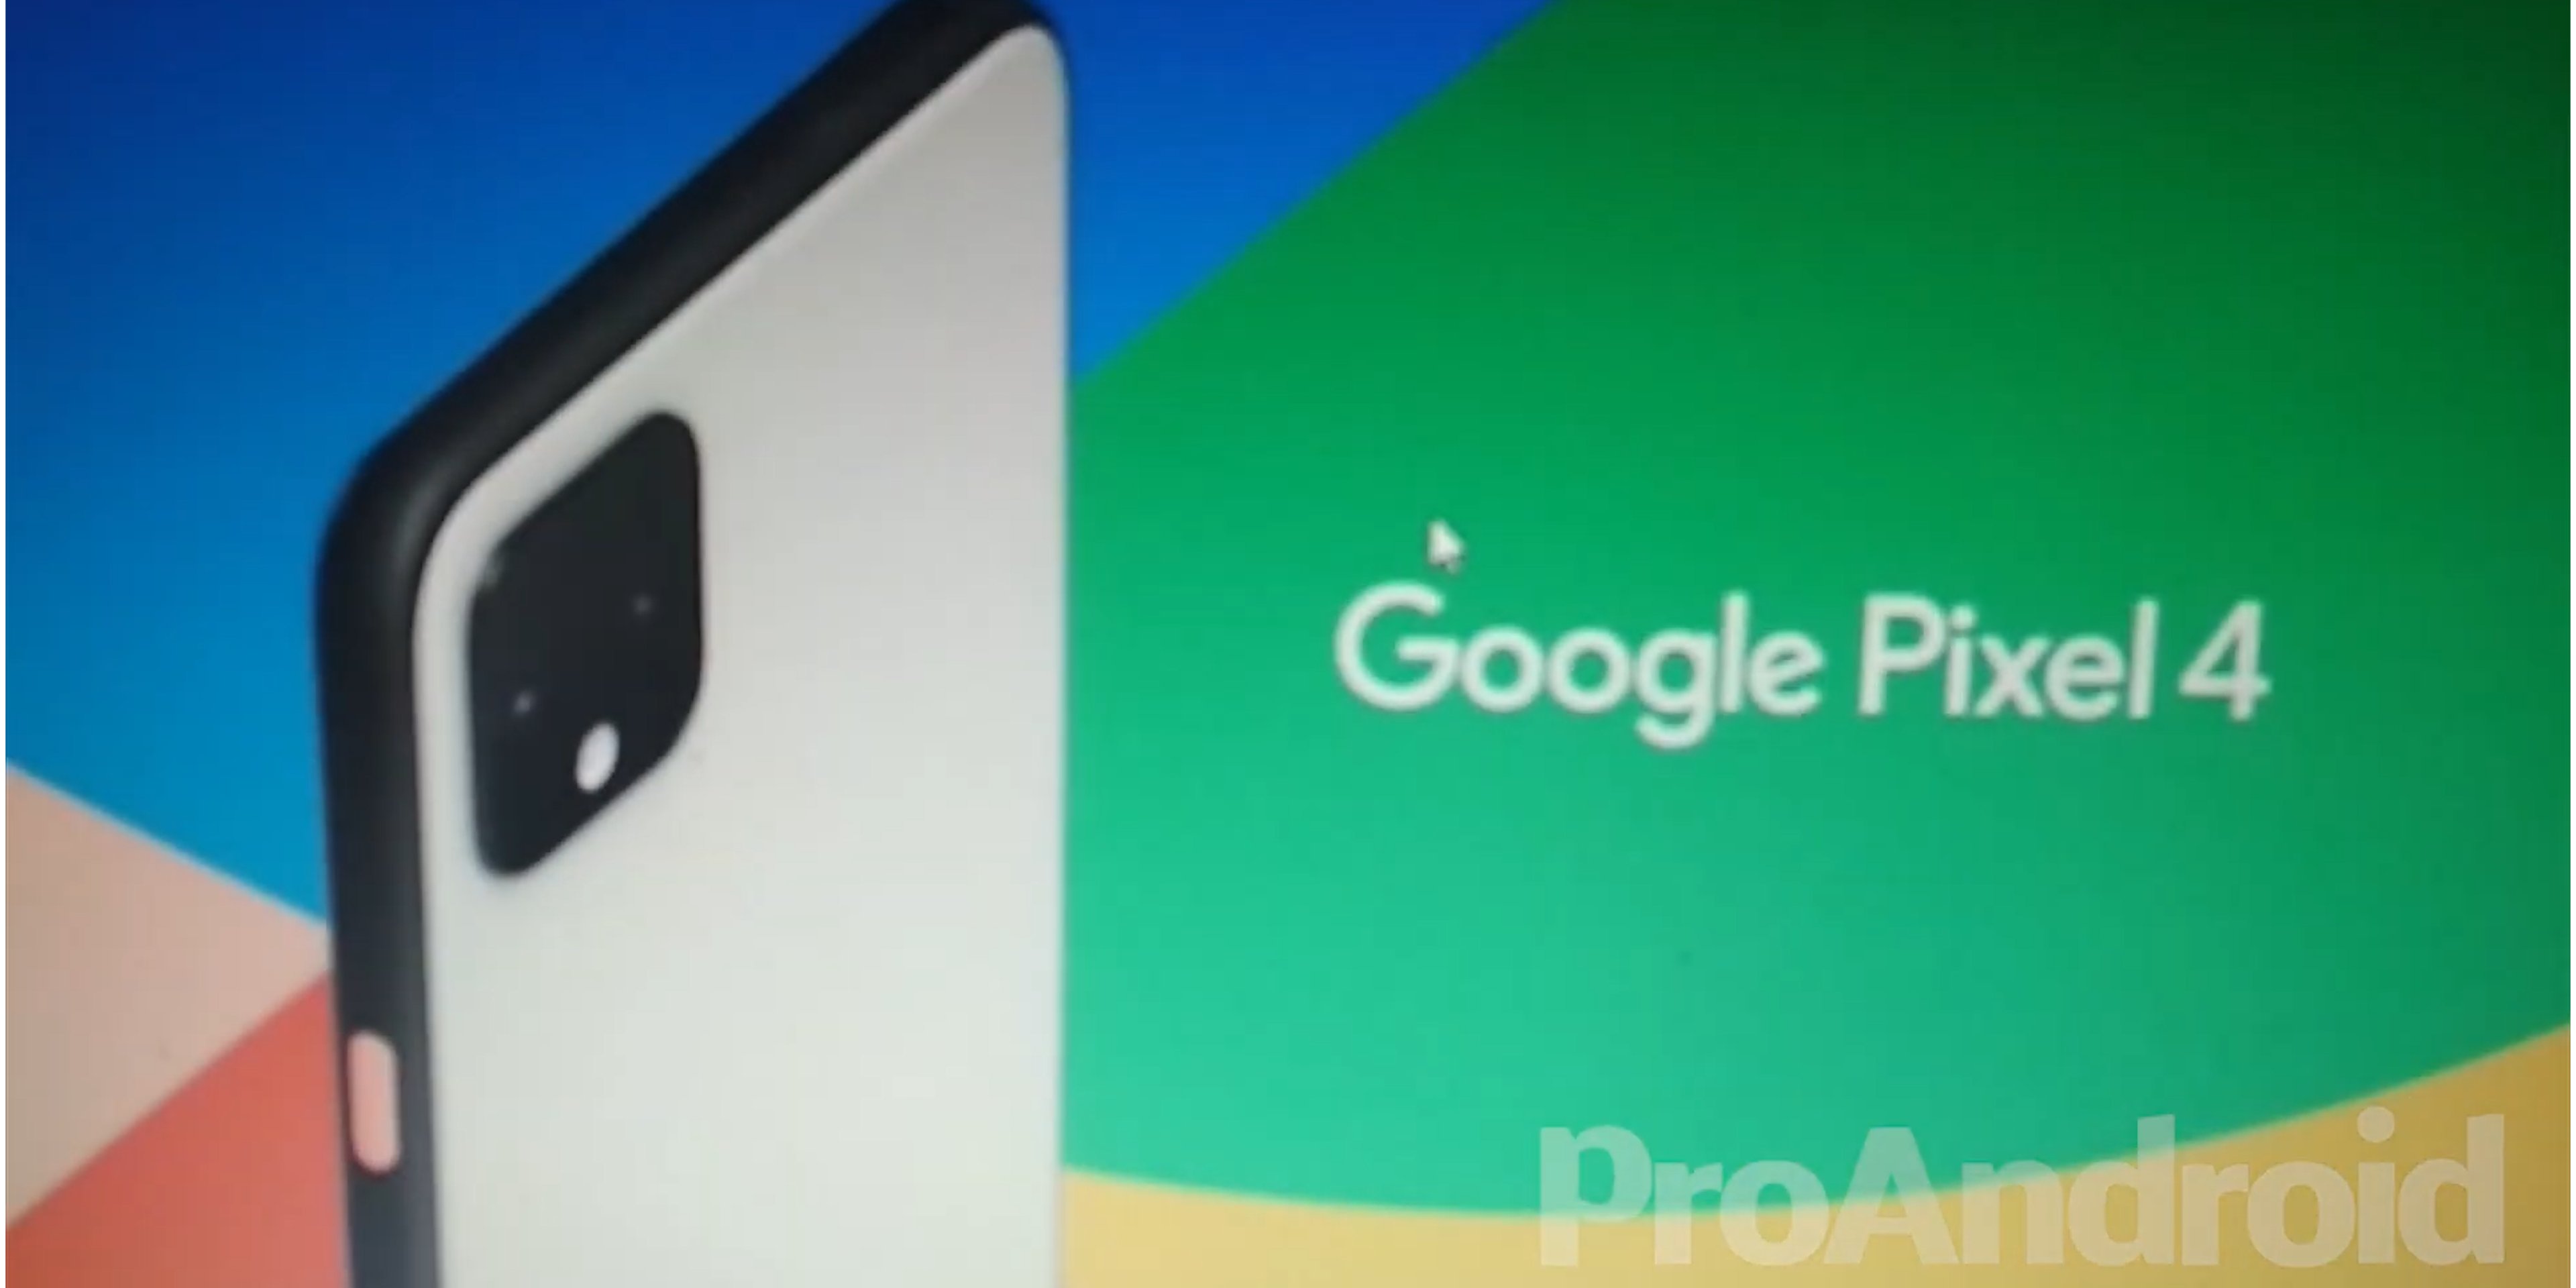 Official-looking Pixel 4 promo video confirms gestures, Astrophotography mode, more